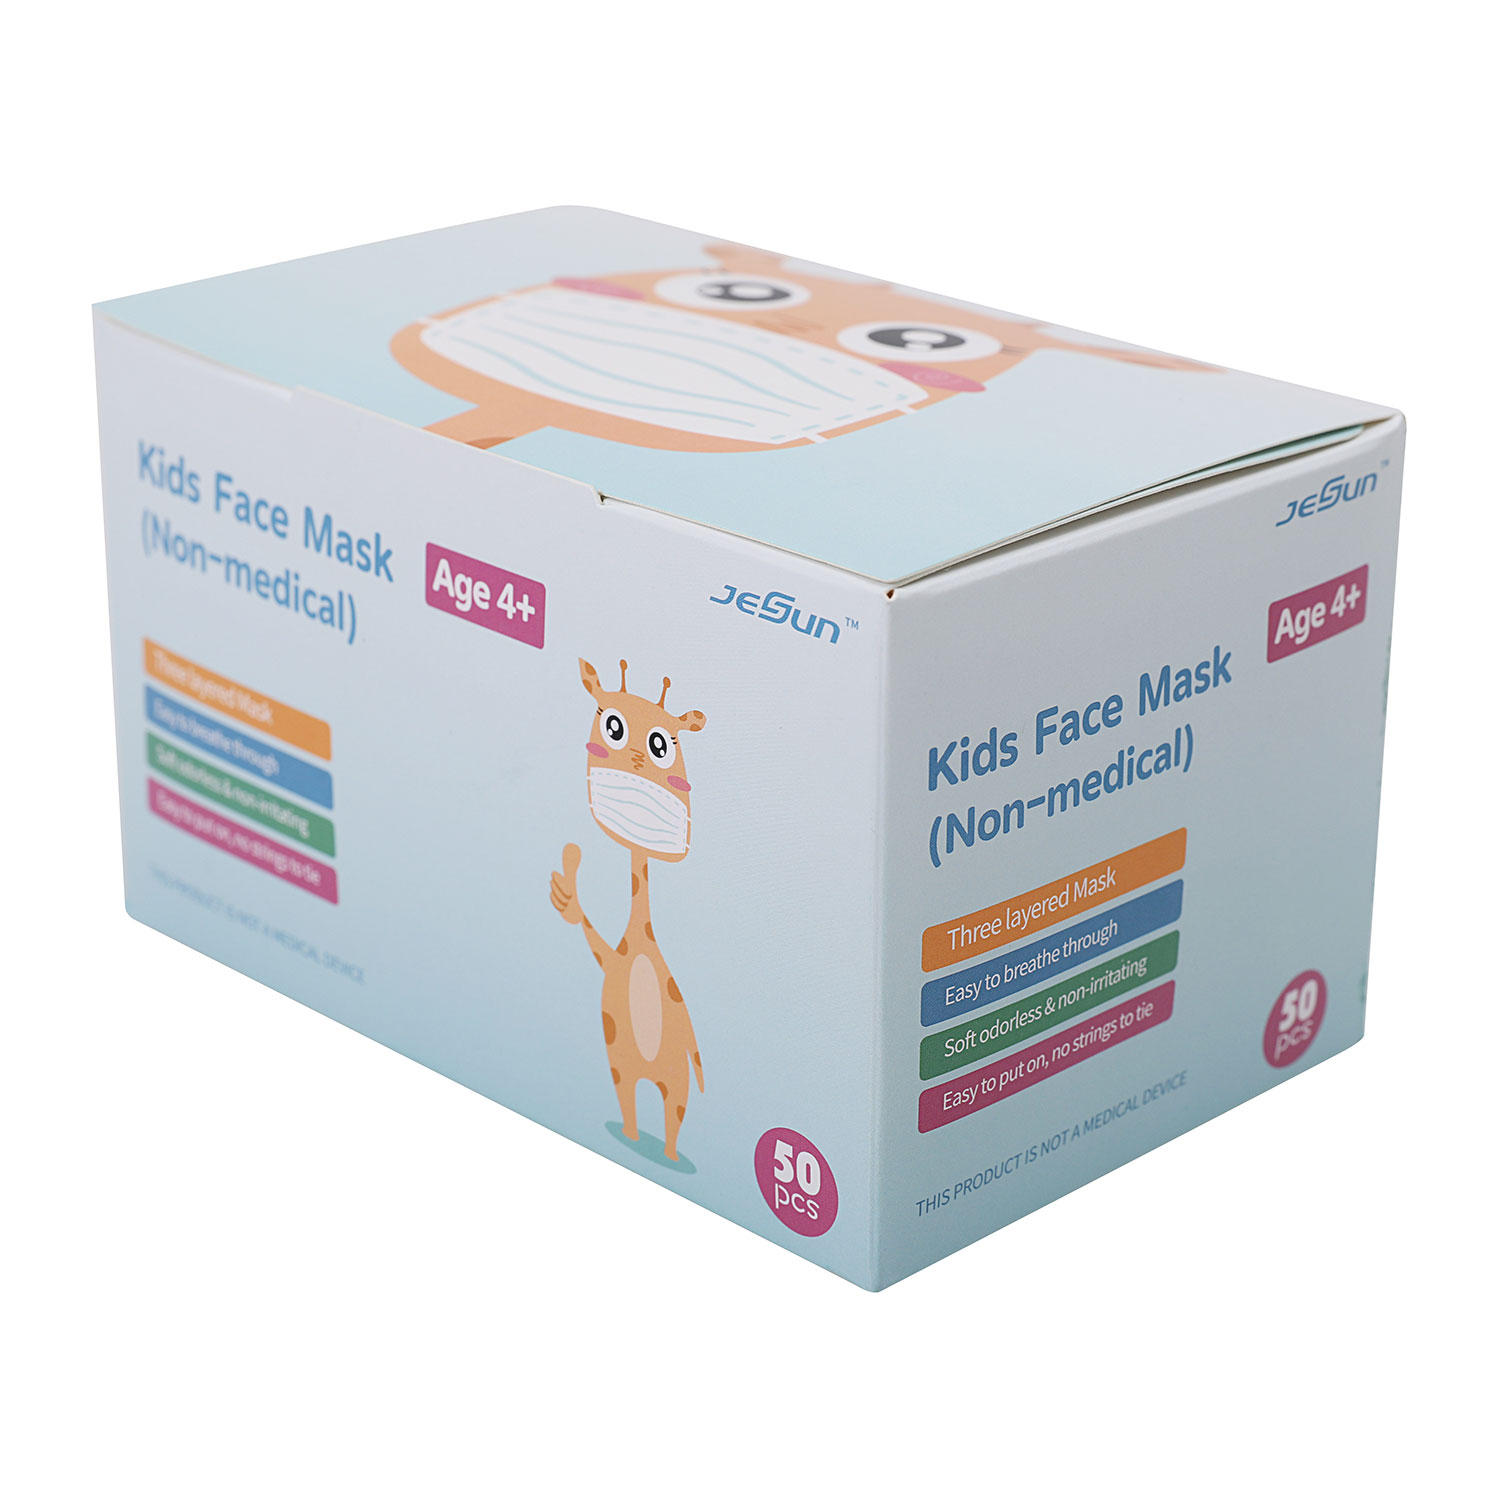 Kids' Non-Medical Disposable Face Masks (50 ct.) $2.98